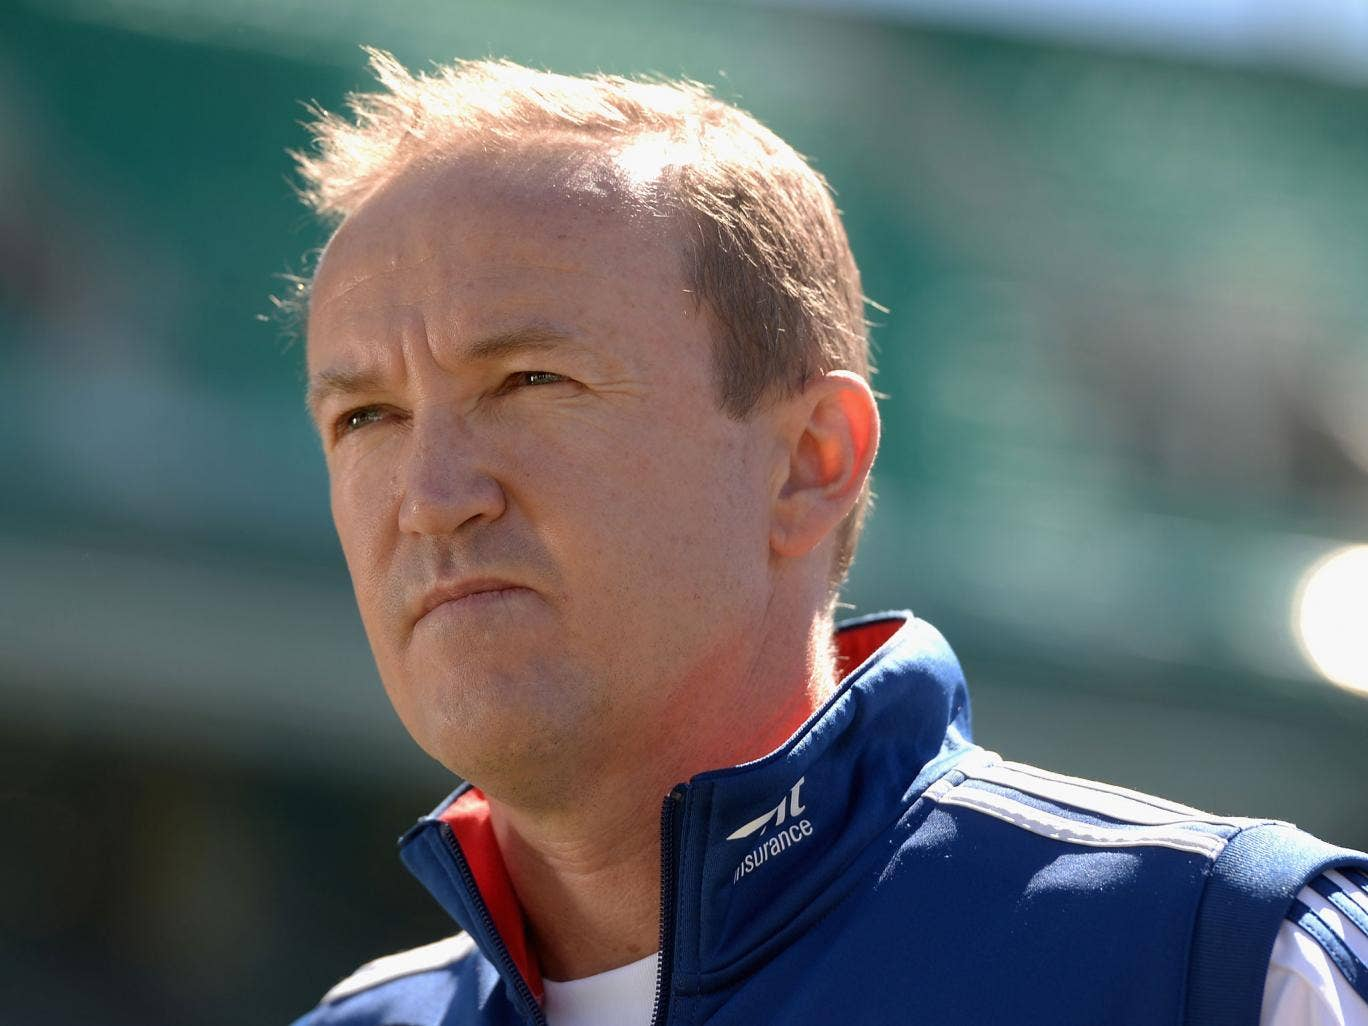 England coach Andy Flower will remain in his role as head coach after admitting he will be continuing with the backing of the ECB